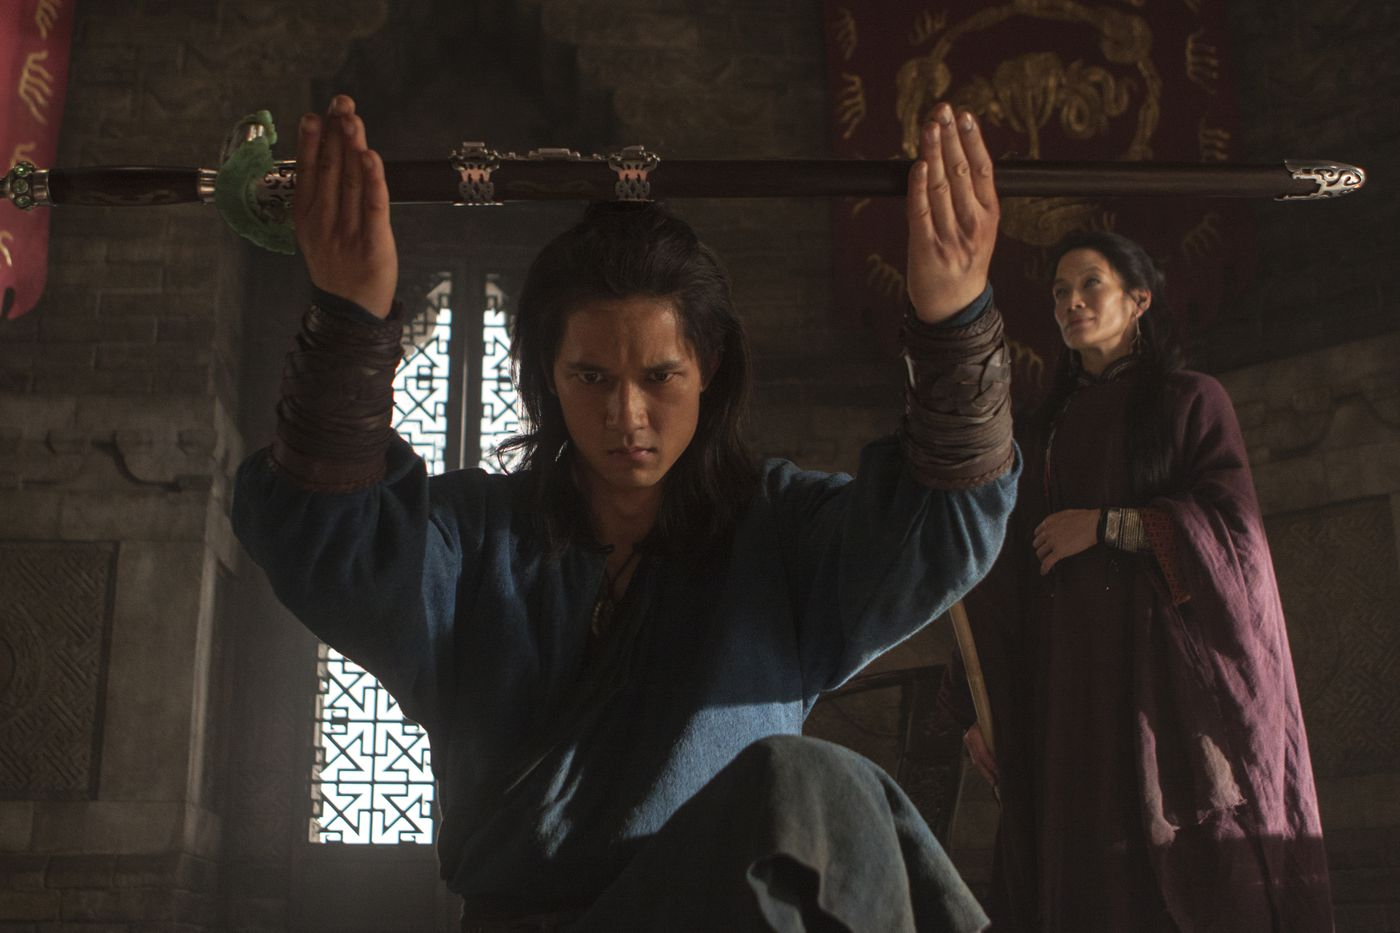 Crouching Tiger, Hidden Dragon: Sword of Destiny shrinks the